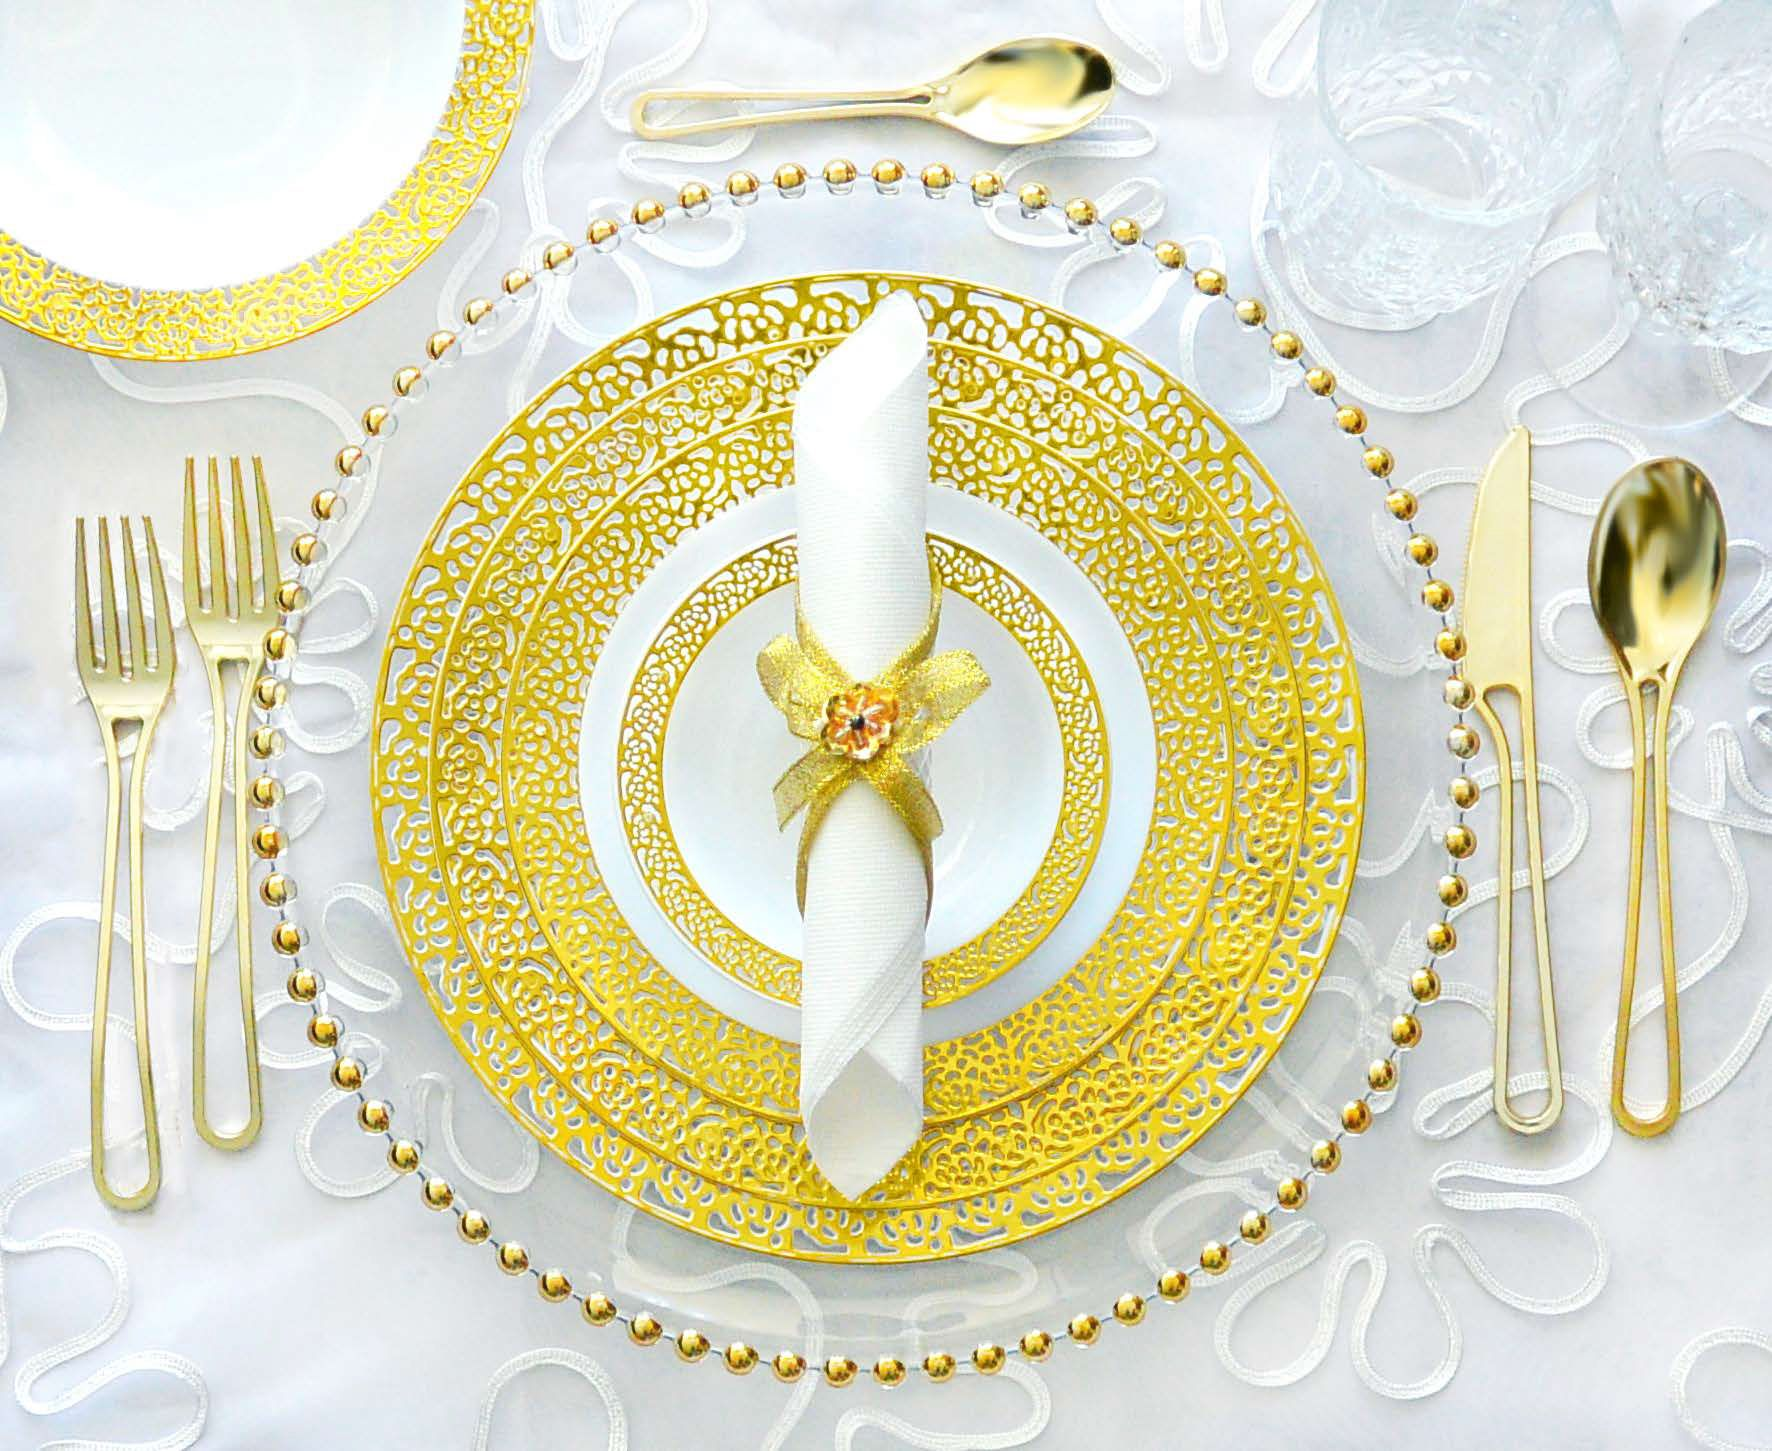 Gorgeous Disposable Plastic Gold Lace Plates Available At